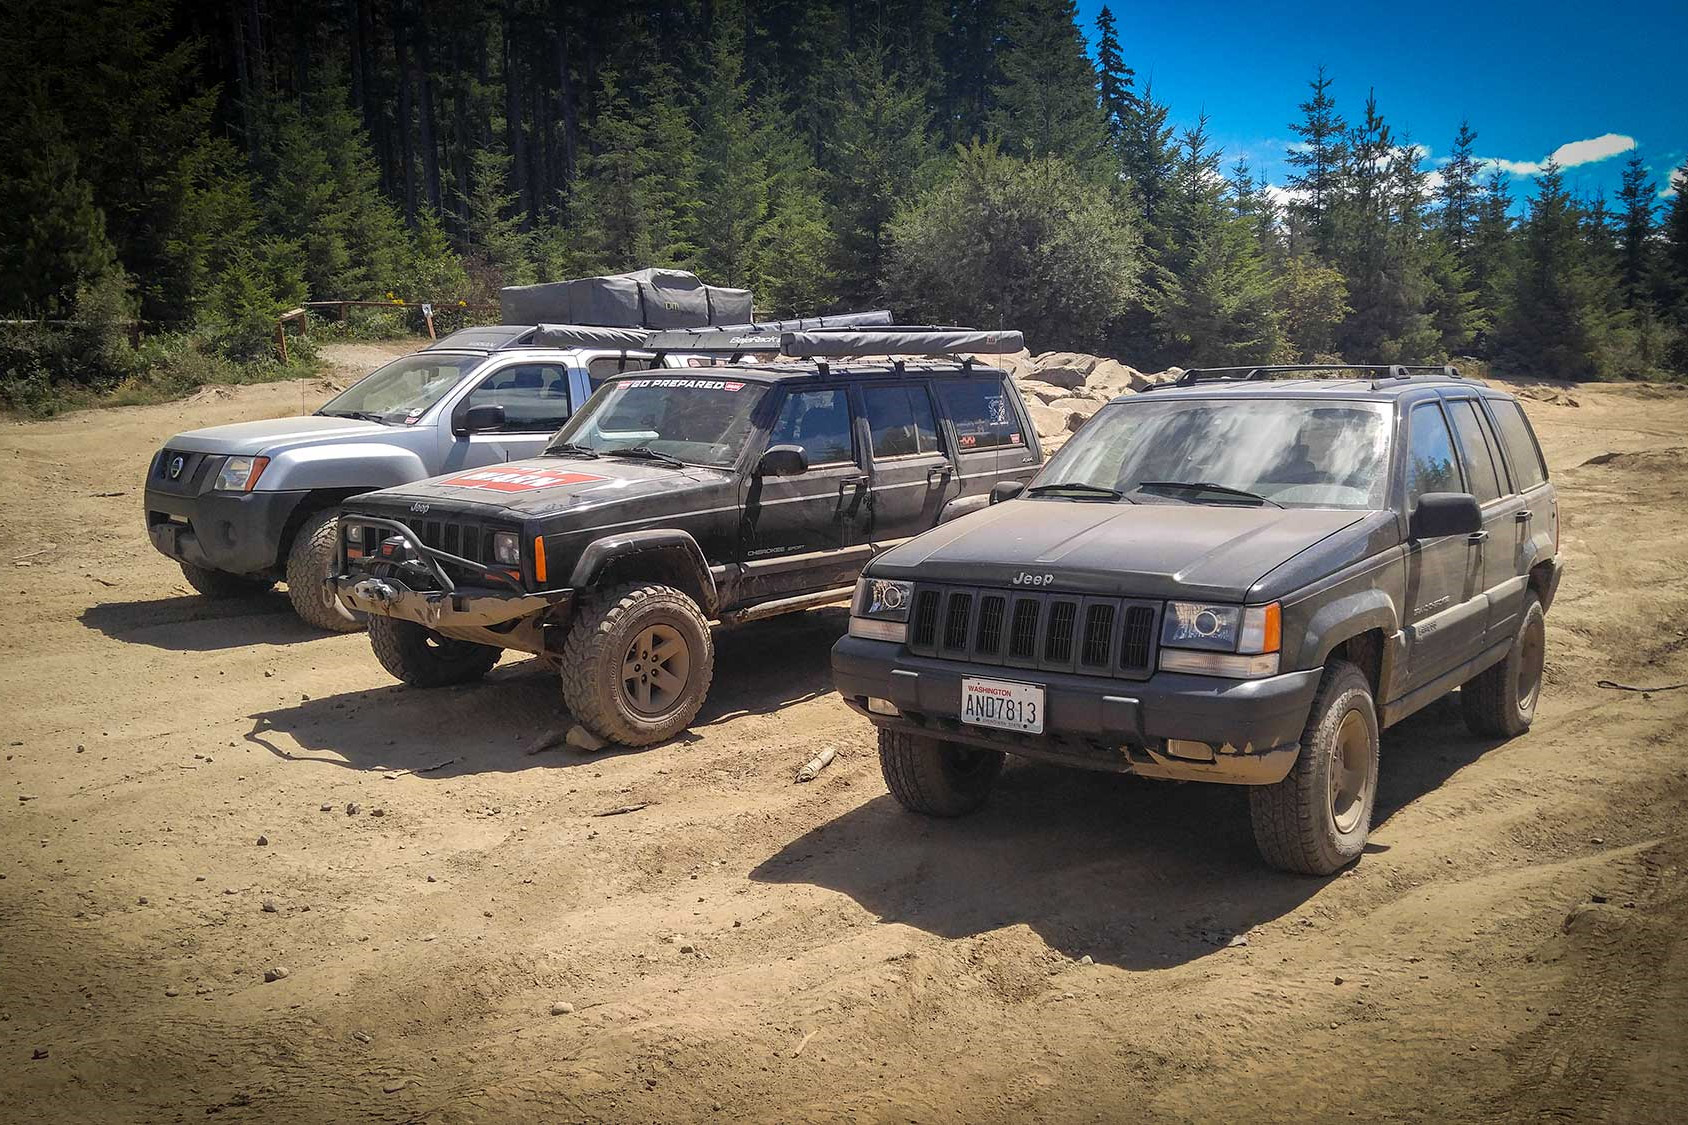 how to off-road - don't go alone